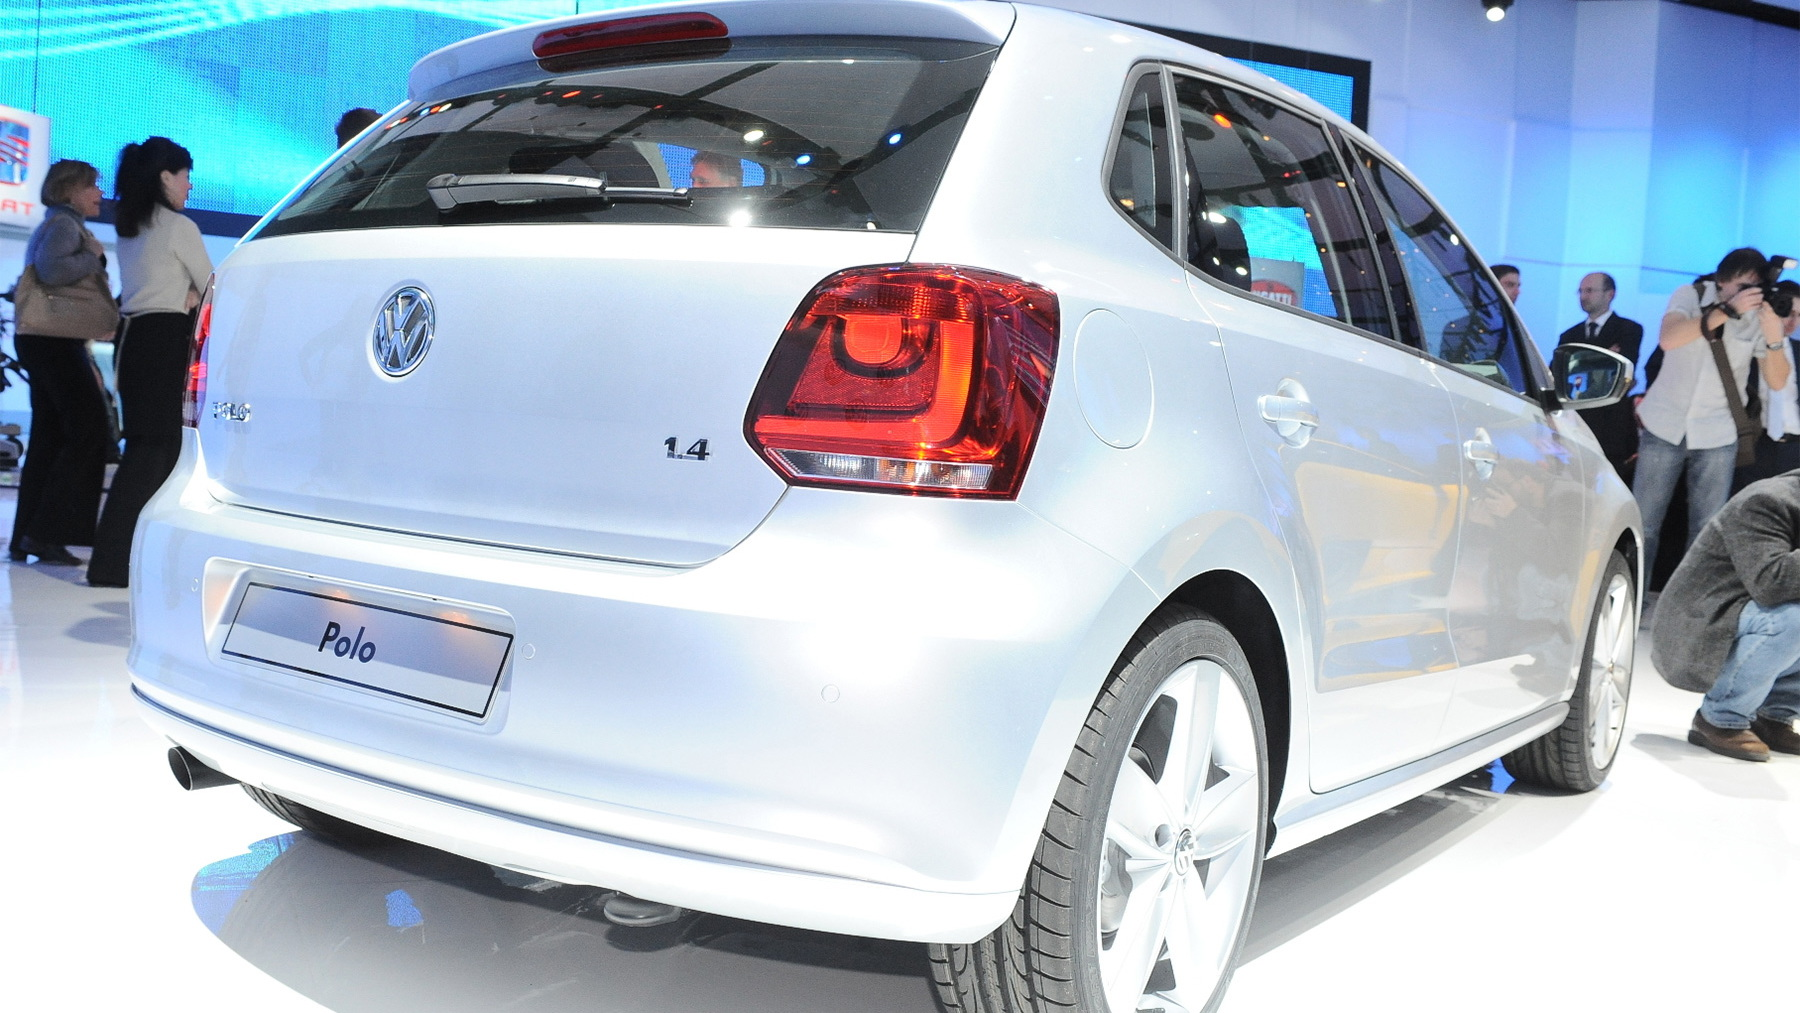 2010 volkswagen polo live 002